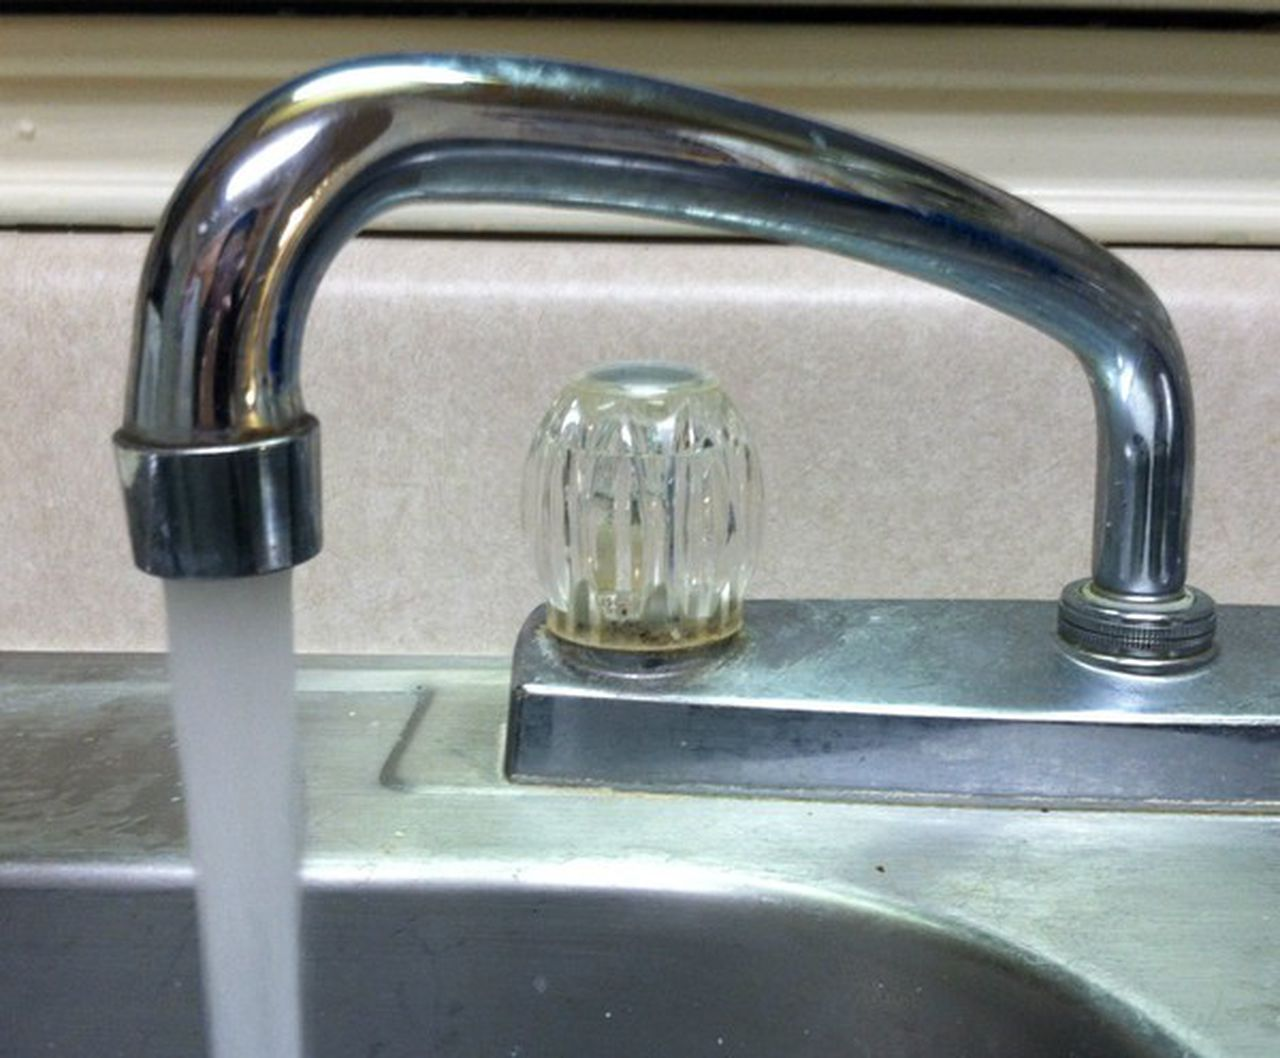 many faucets should you leave dripping